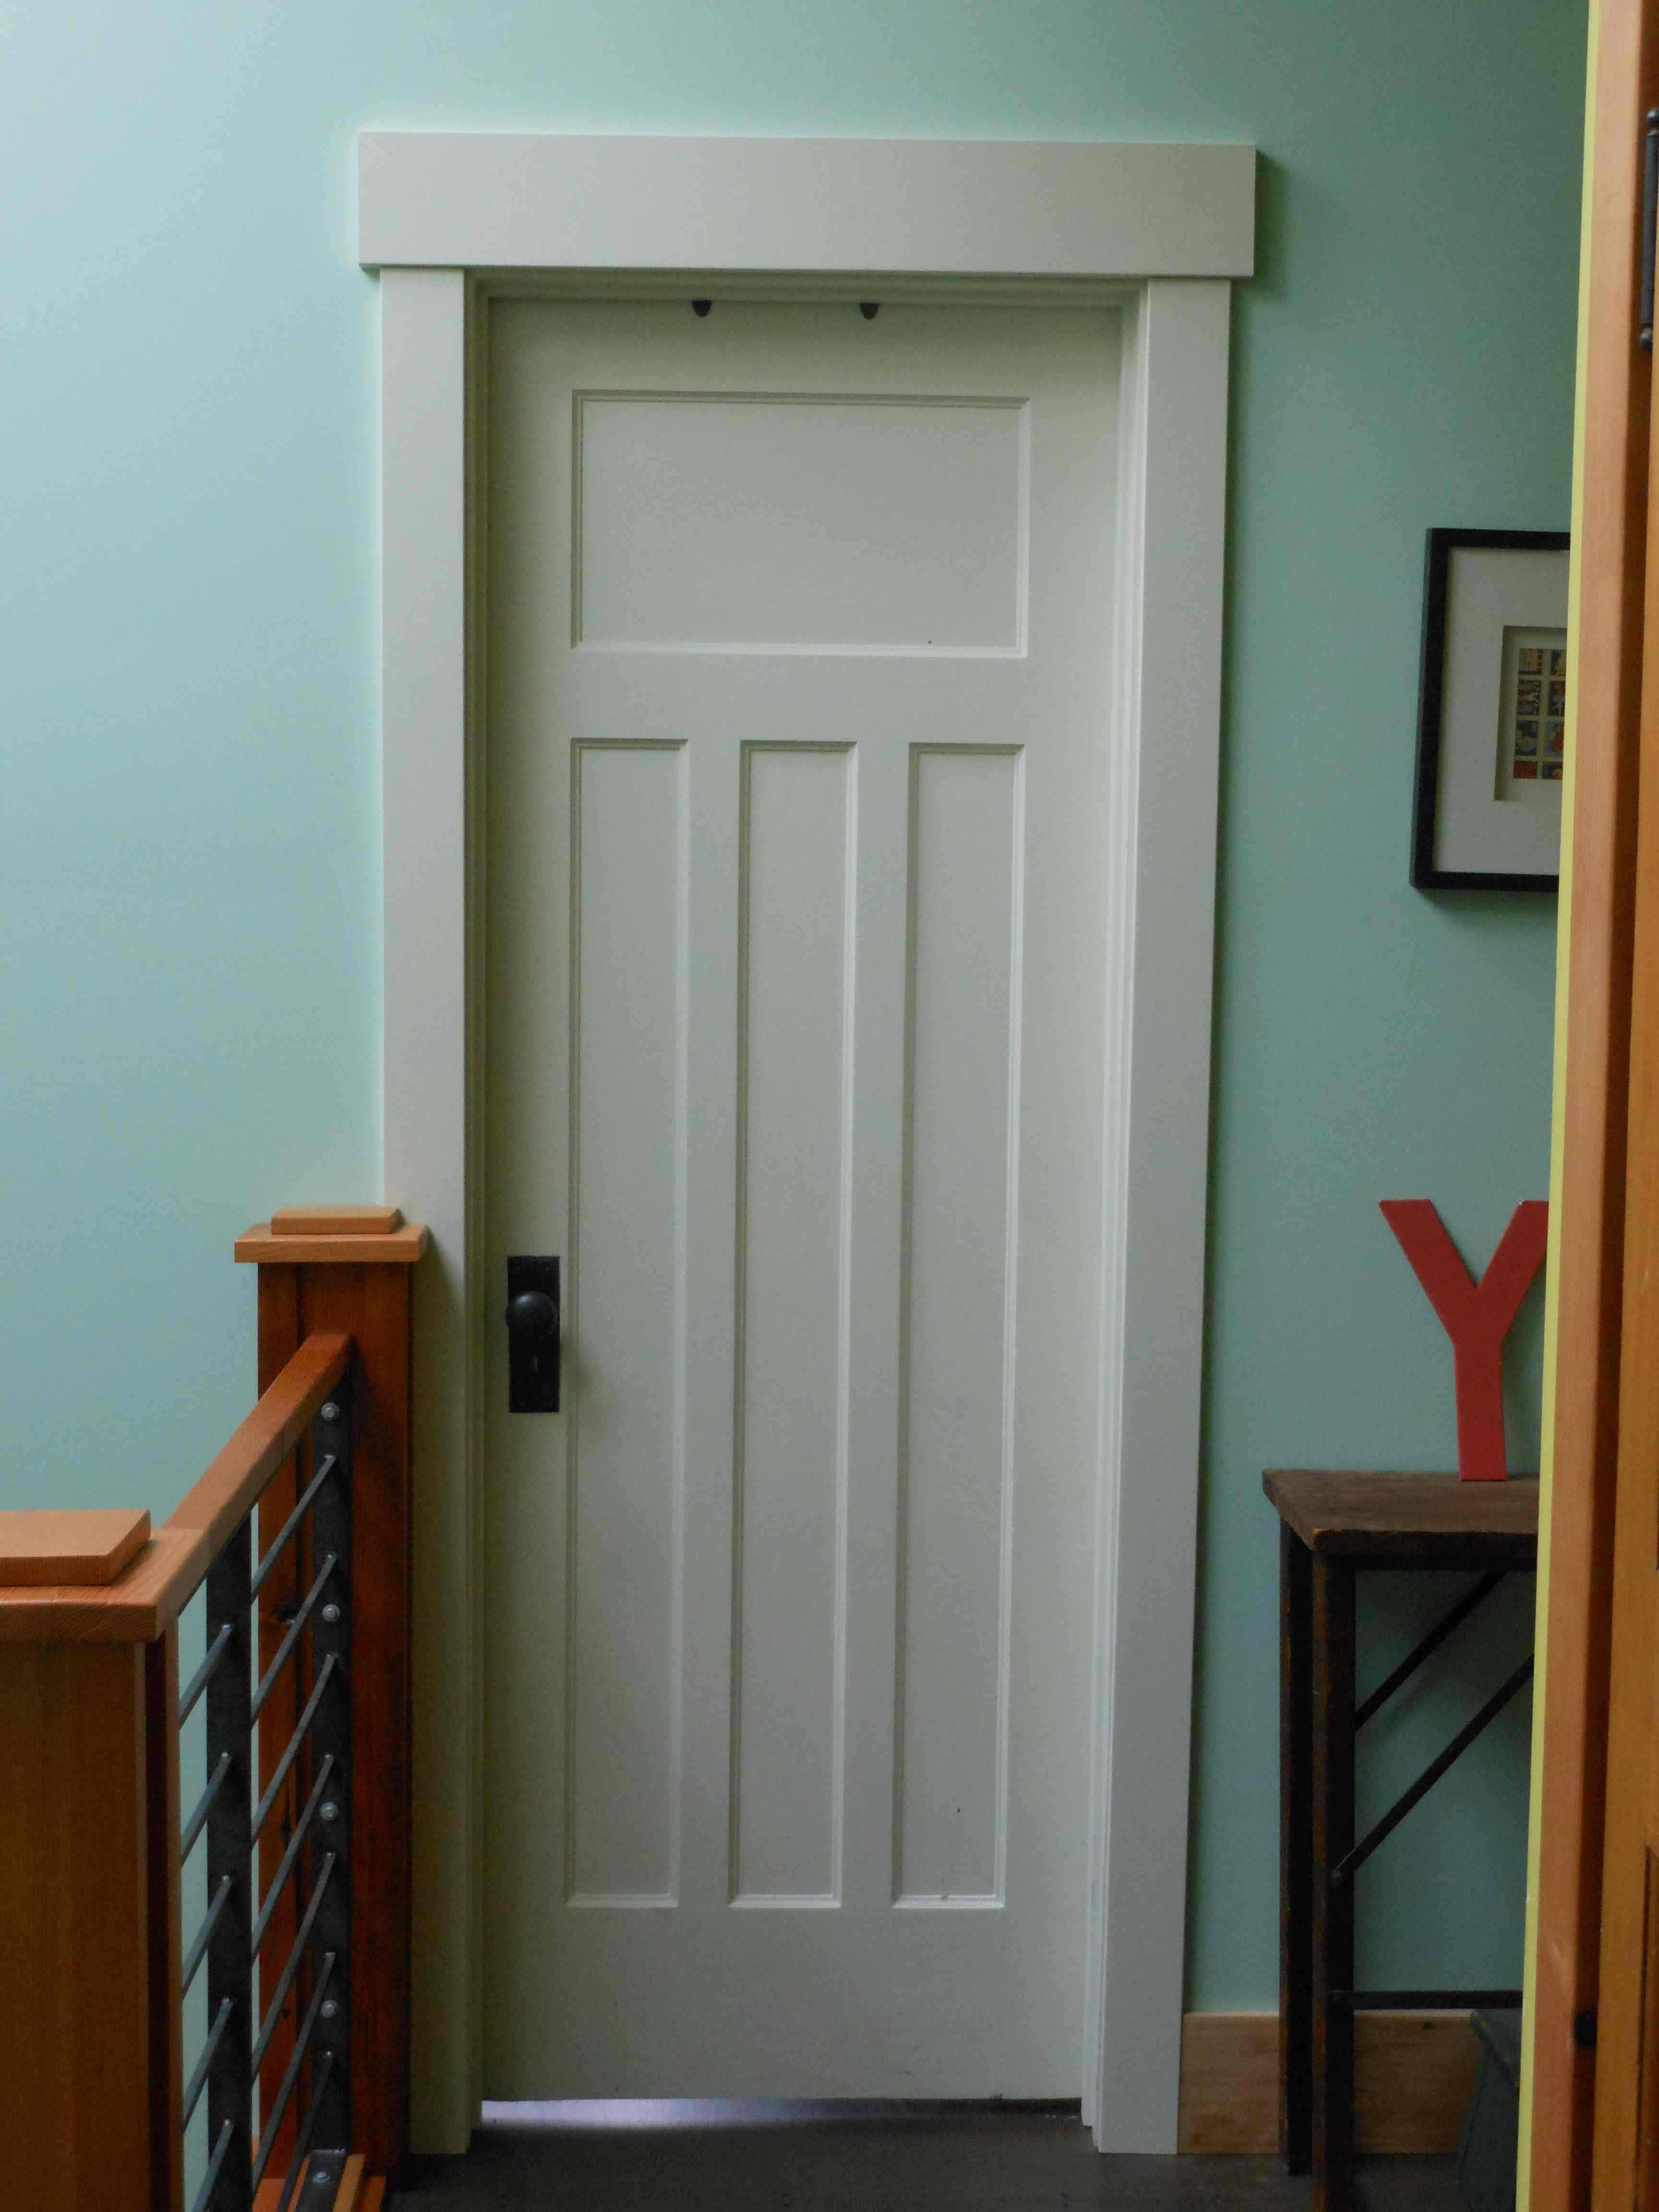 Bedroom Door Pictures Craftsman Style Archives Hammer Like A Girlhammer Like A